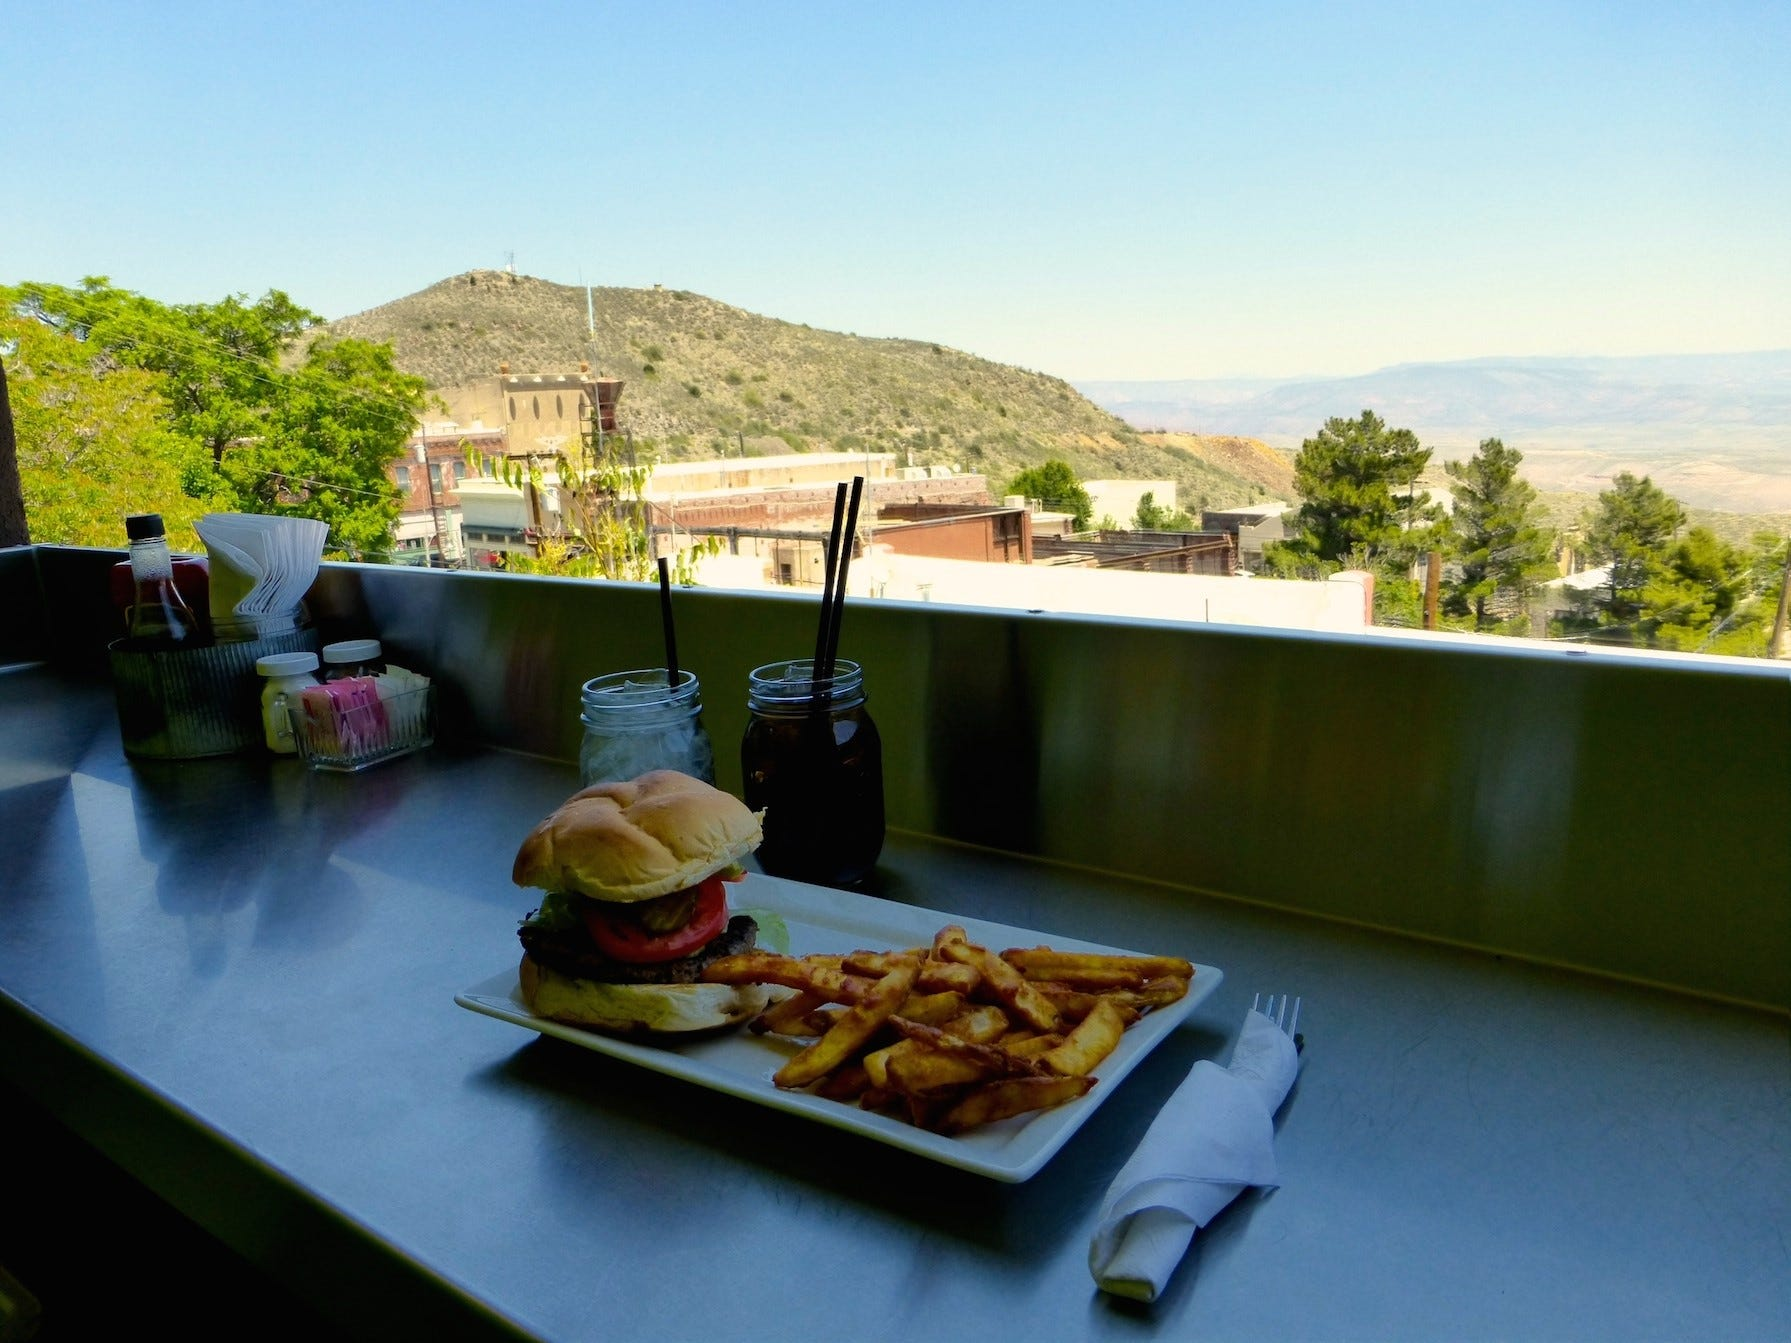 There are no bad seats at the Haunted Hamburger in Jerome. Spots on the deck or the View Bar are special favorites.